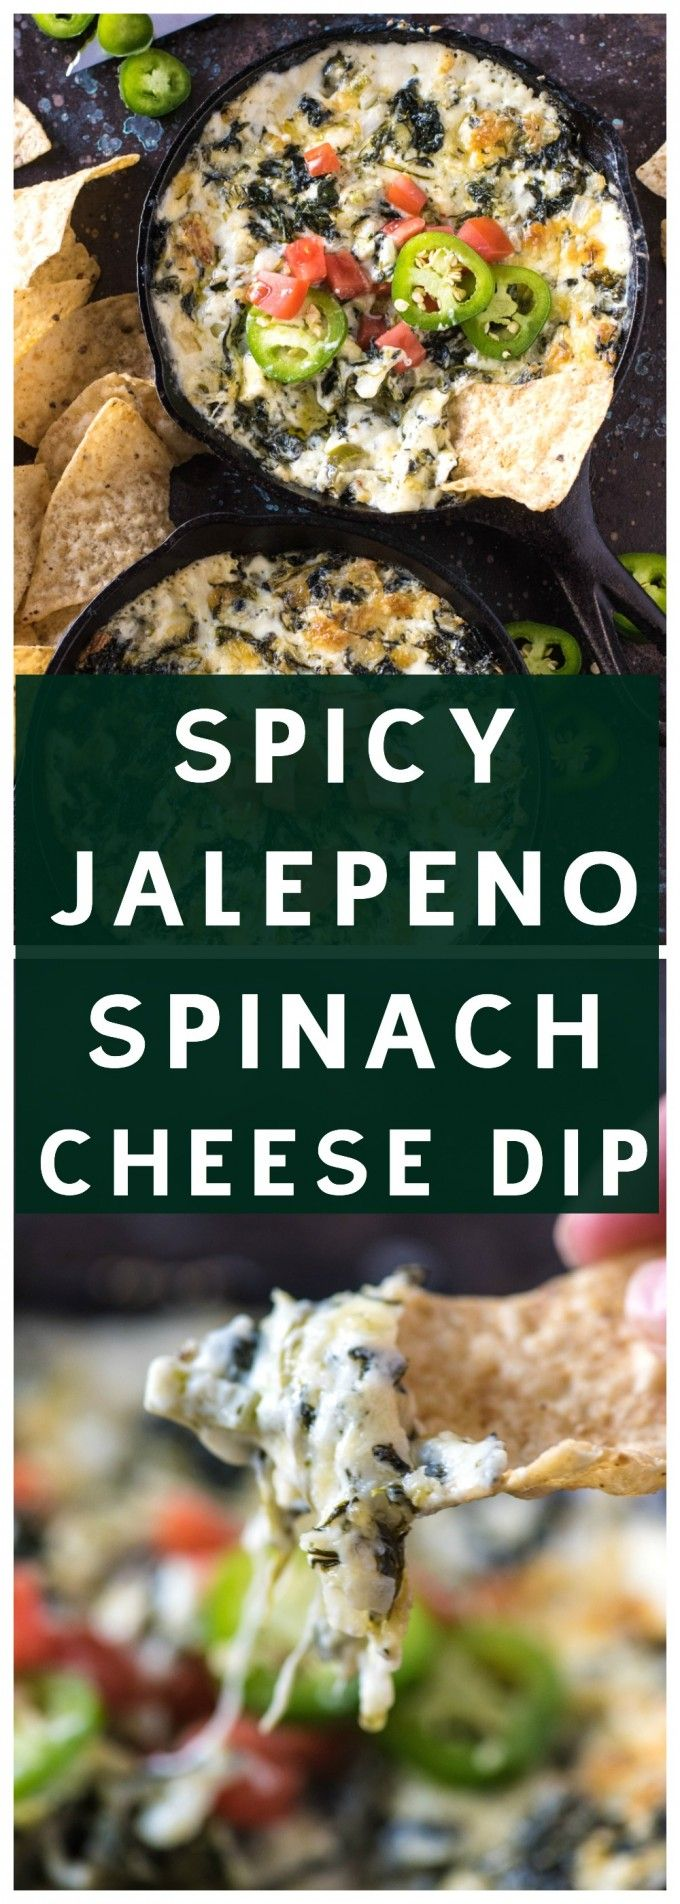 Spicy Jalepeño Spinach Cheese Dip is a quick and easy appetizer- you'll love this spicy twist on a cheesy classic! via @gogogogourmet